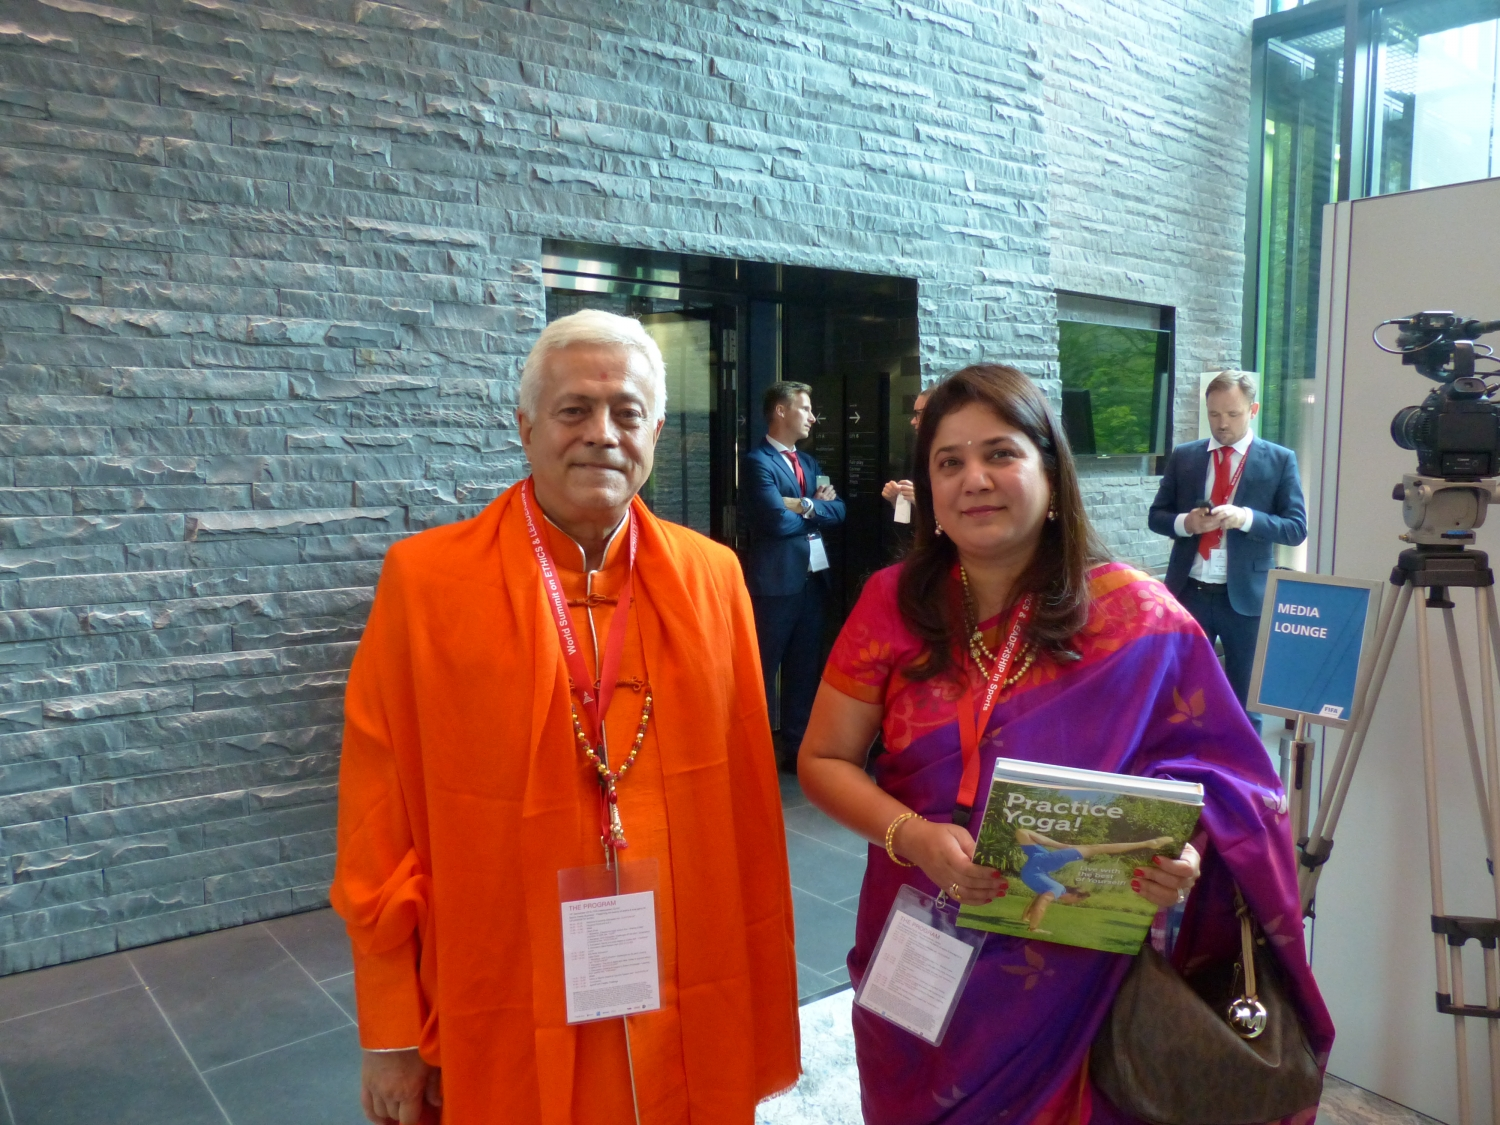 H.H. Jagat Guru Amrta Súryánanda Mahá Rája with Mrs. Rajita Kulkarni, President of the World Forum for Ethics in Business